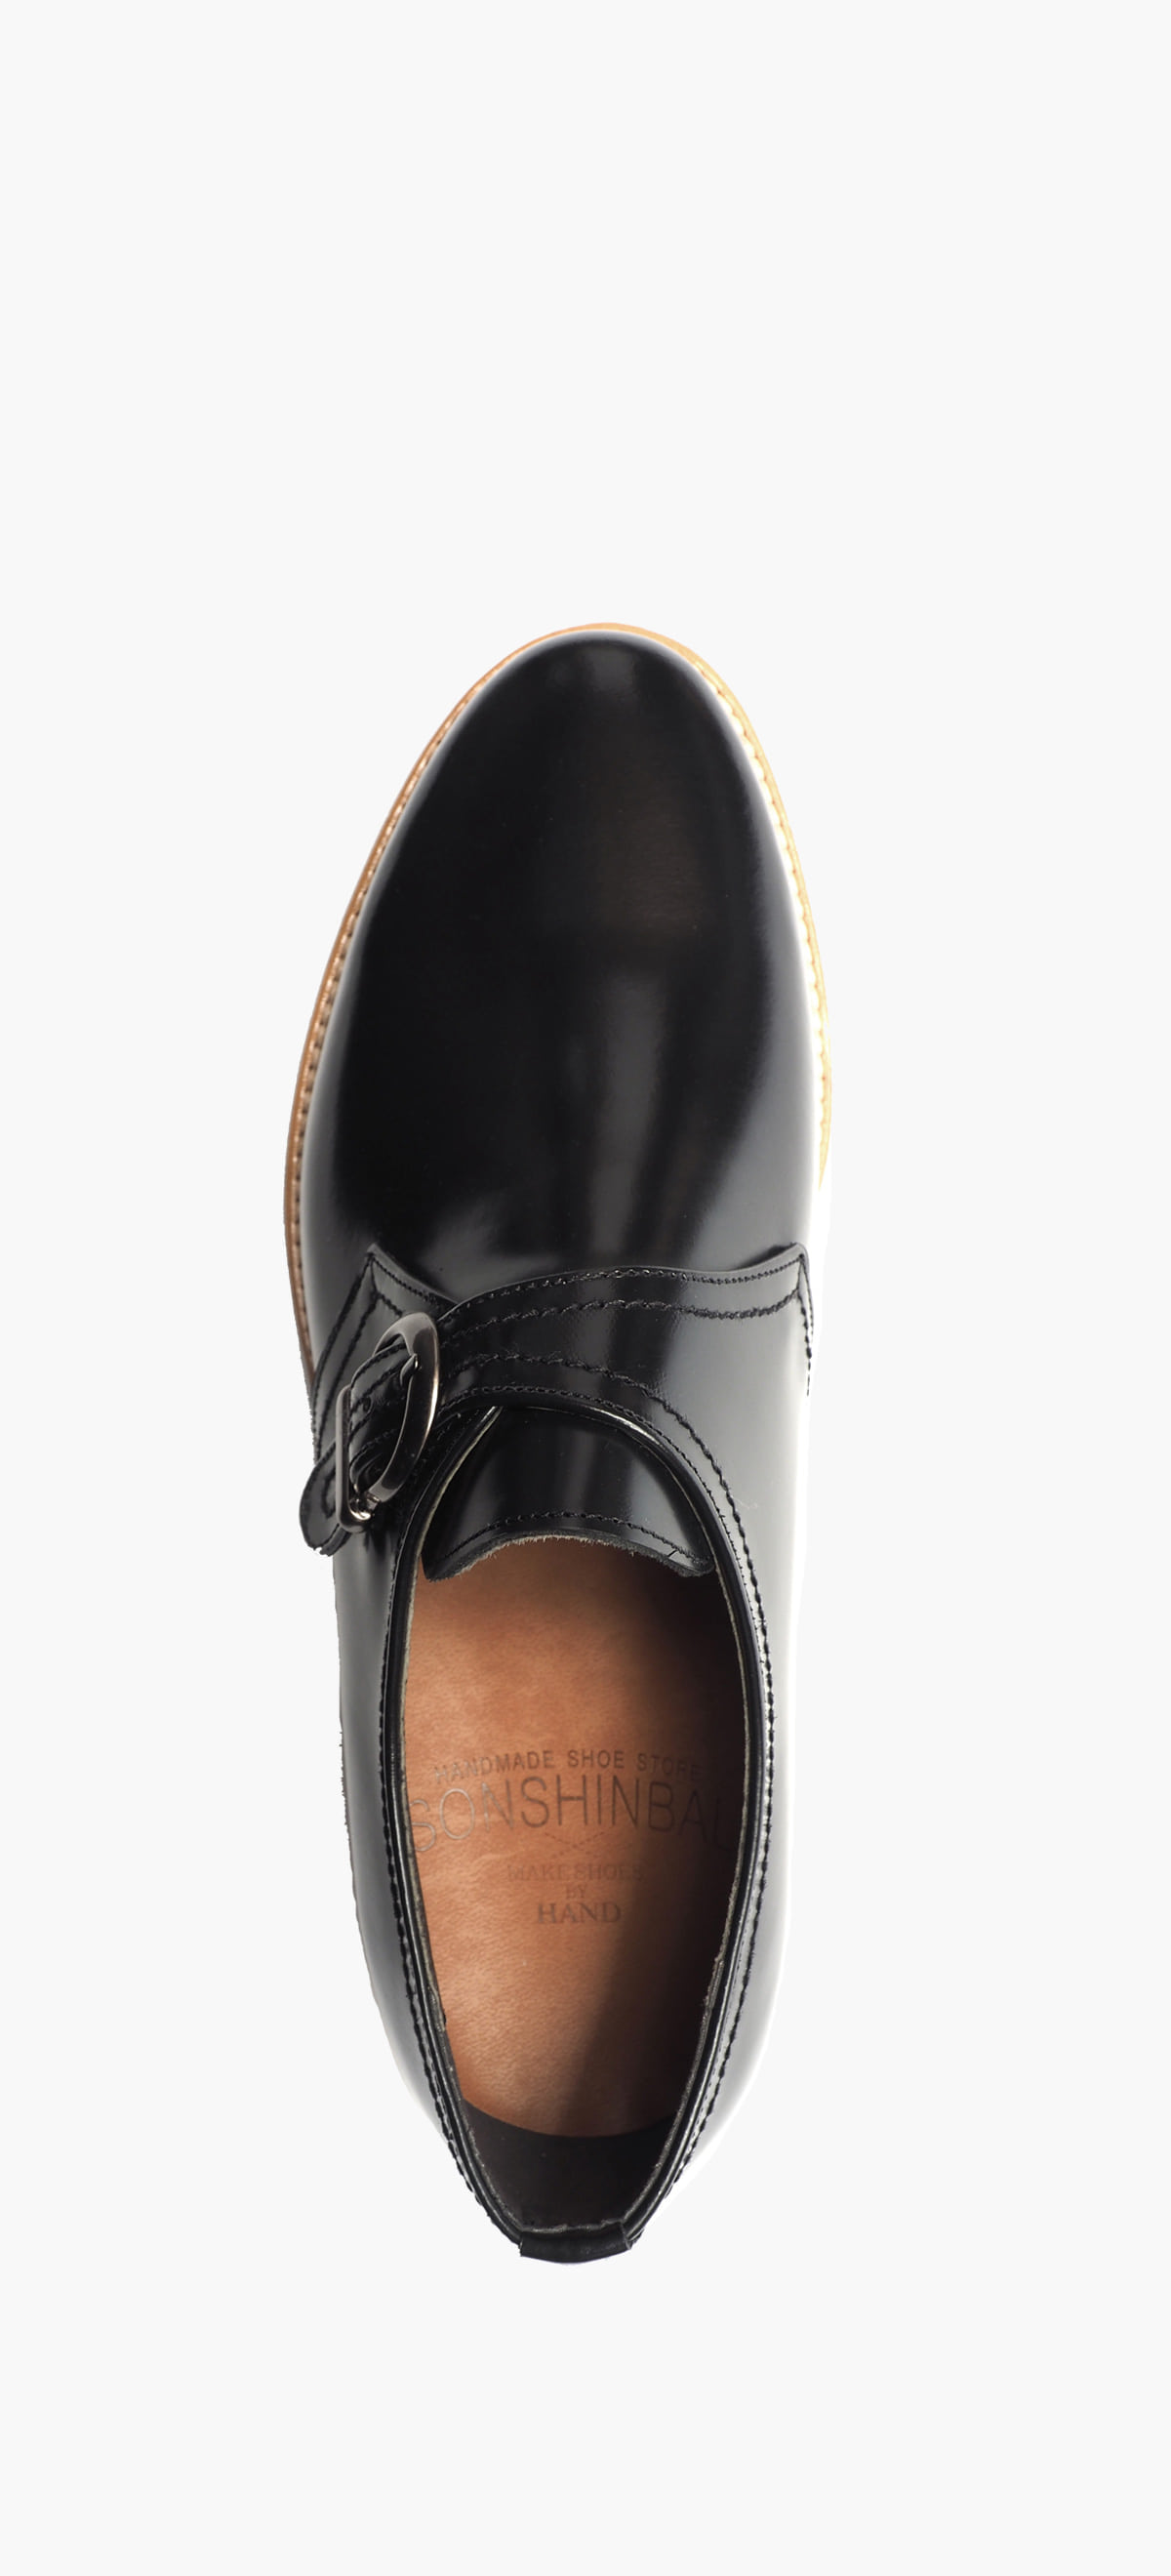 Monk Strap 0090-08 Black Box(Comando Sole)